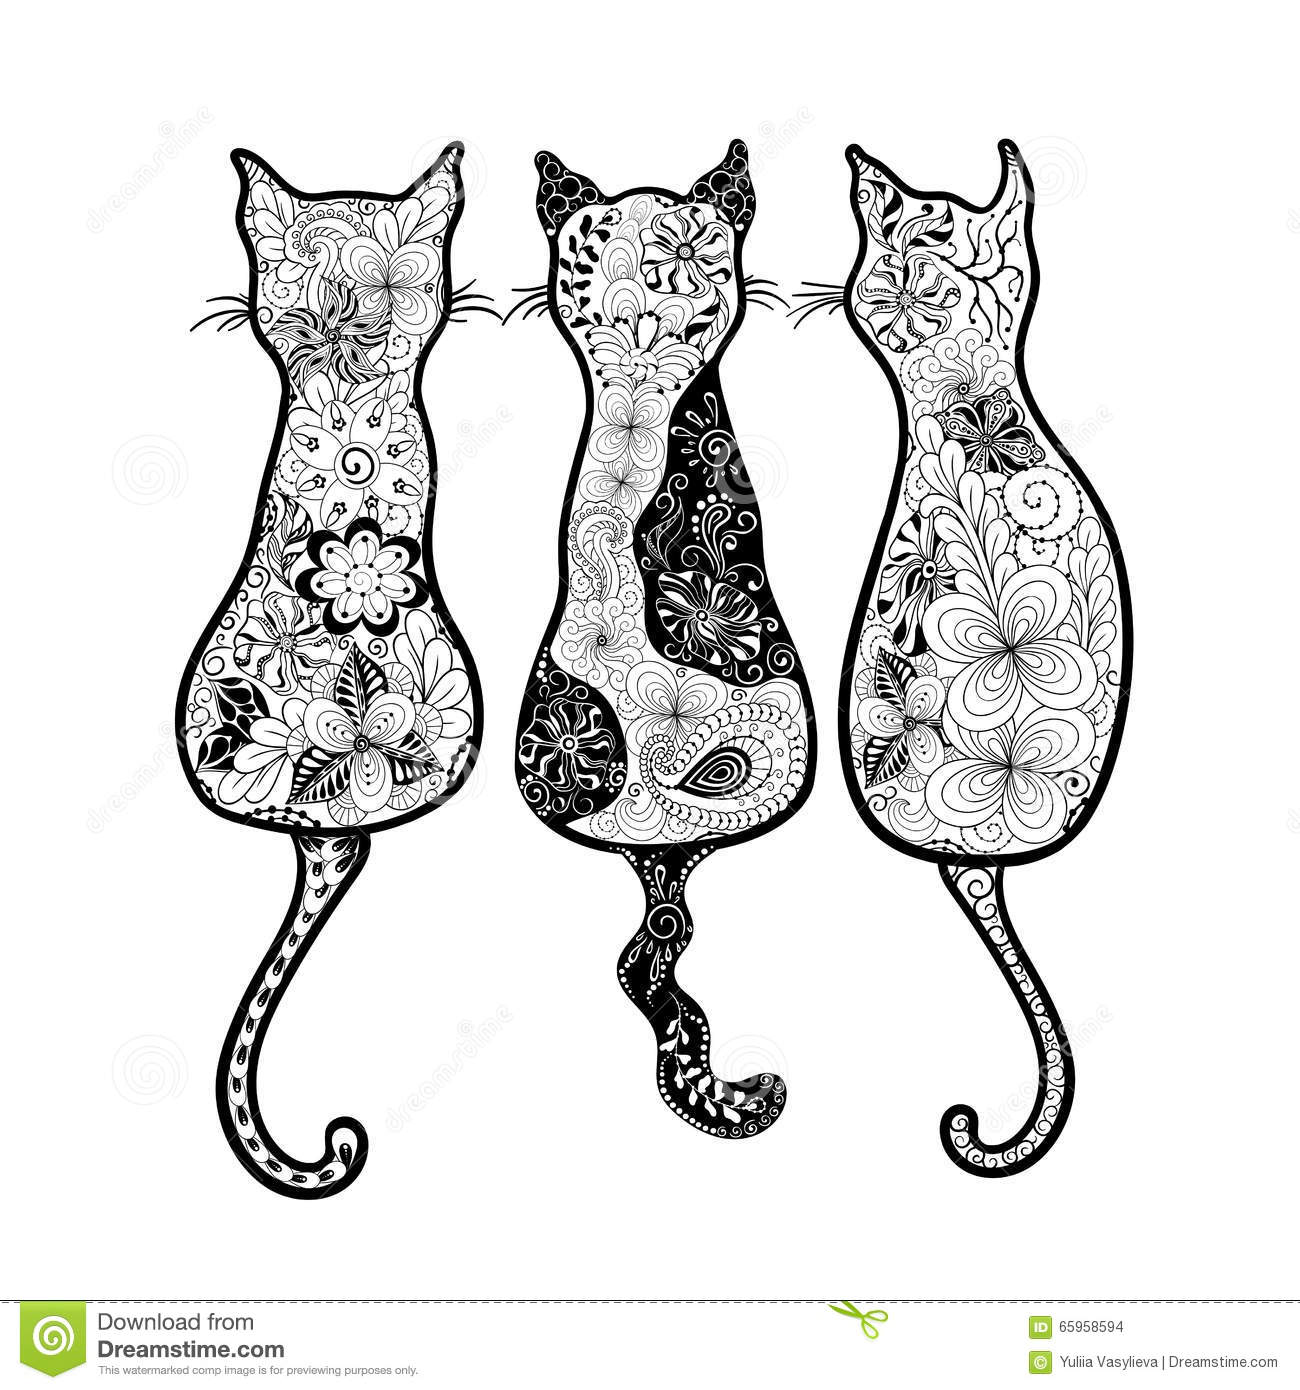 Cats Doodle Stock Vector Illustration Of Animal Stylized